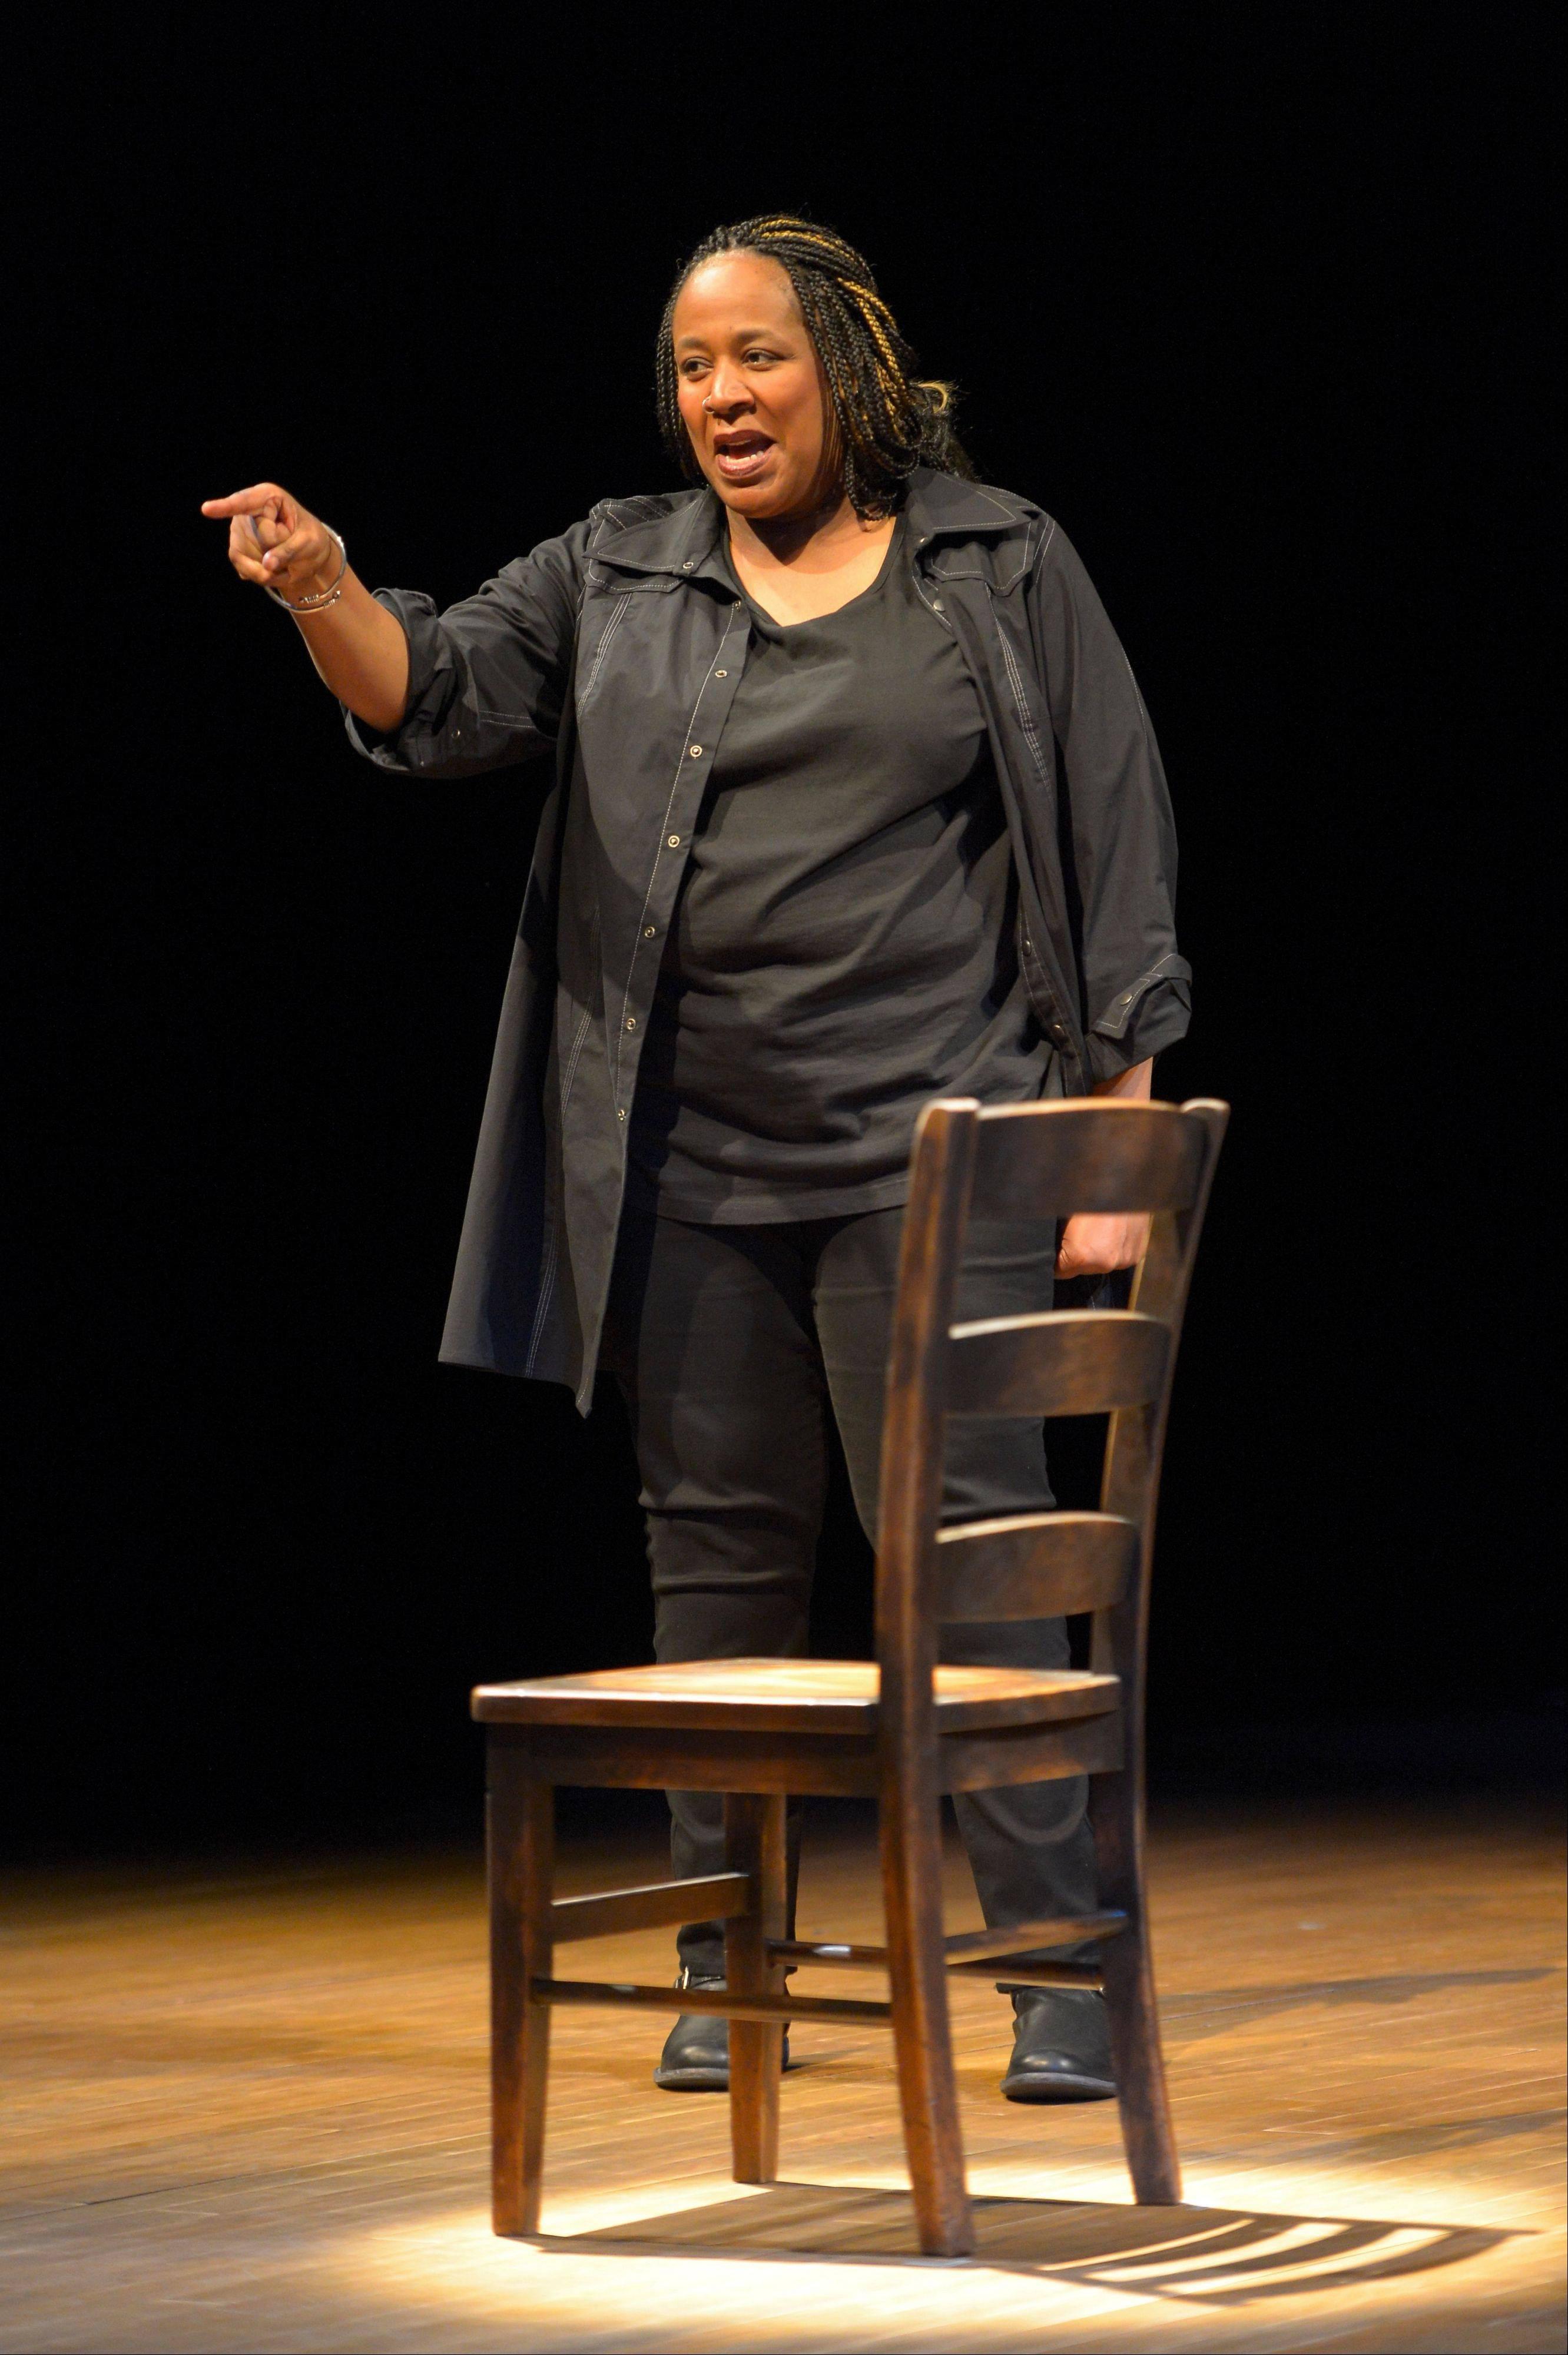 "Dael Orlandersmith delivers a compelling, unsettling portrait of the cycle of abuse in her one-person show ""Black n Blue Boys/Broken Men,"" directed by Chay Yew for Goodman Theatre."